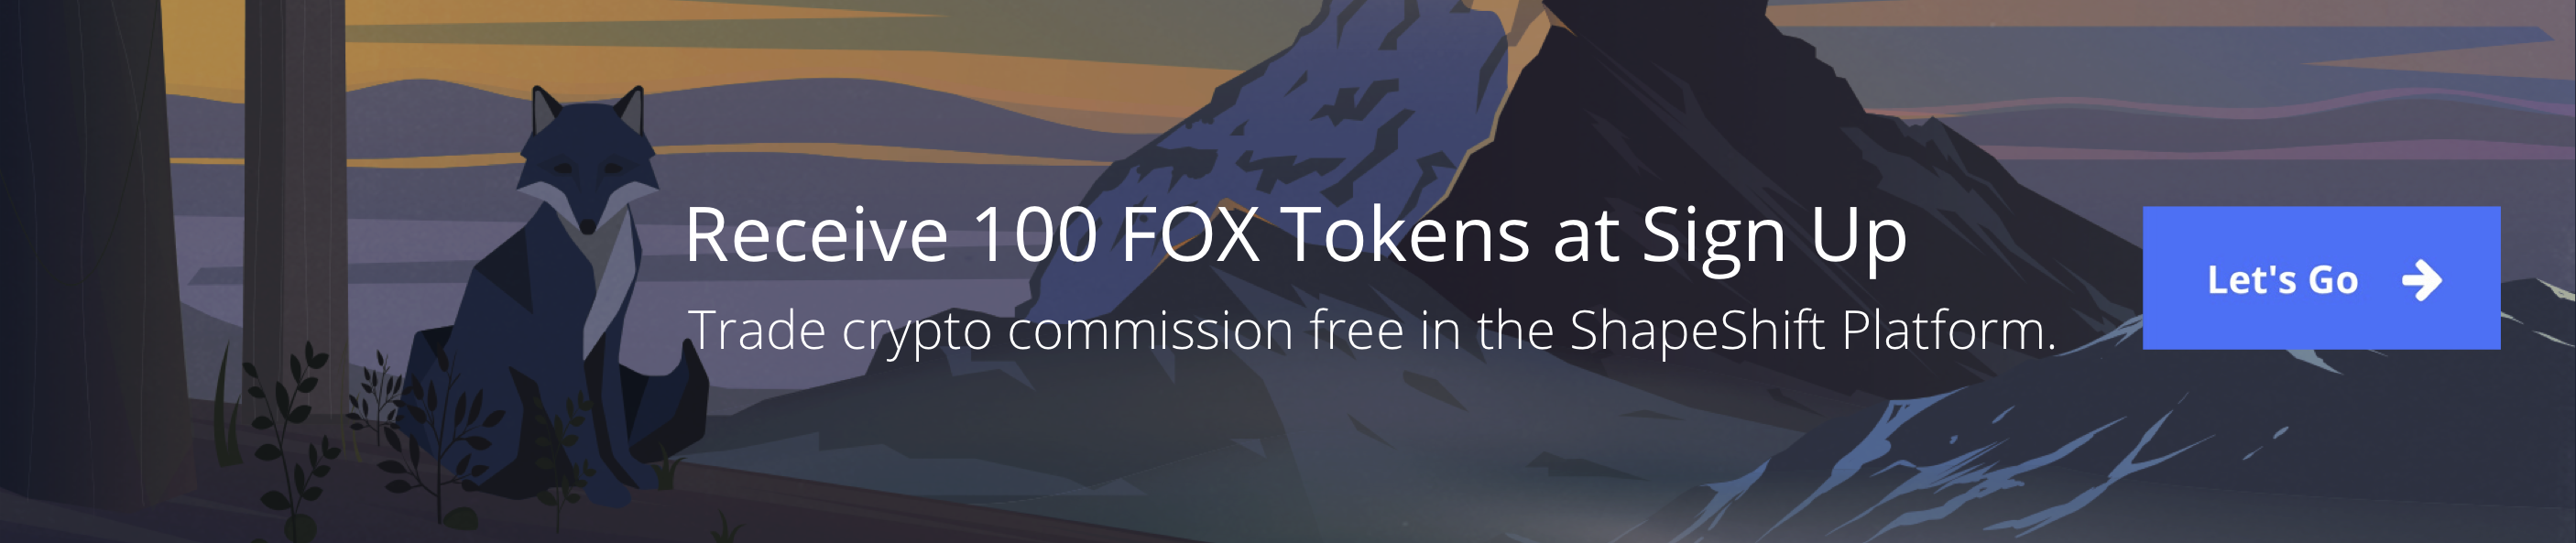 Trade crypto for free on the ShapeShift Platform. Create a verified account & get 100 FOX tokens to start trading for free.